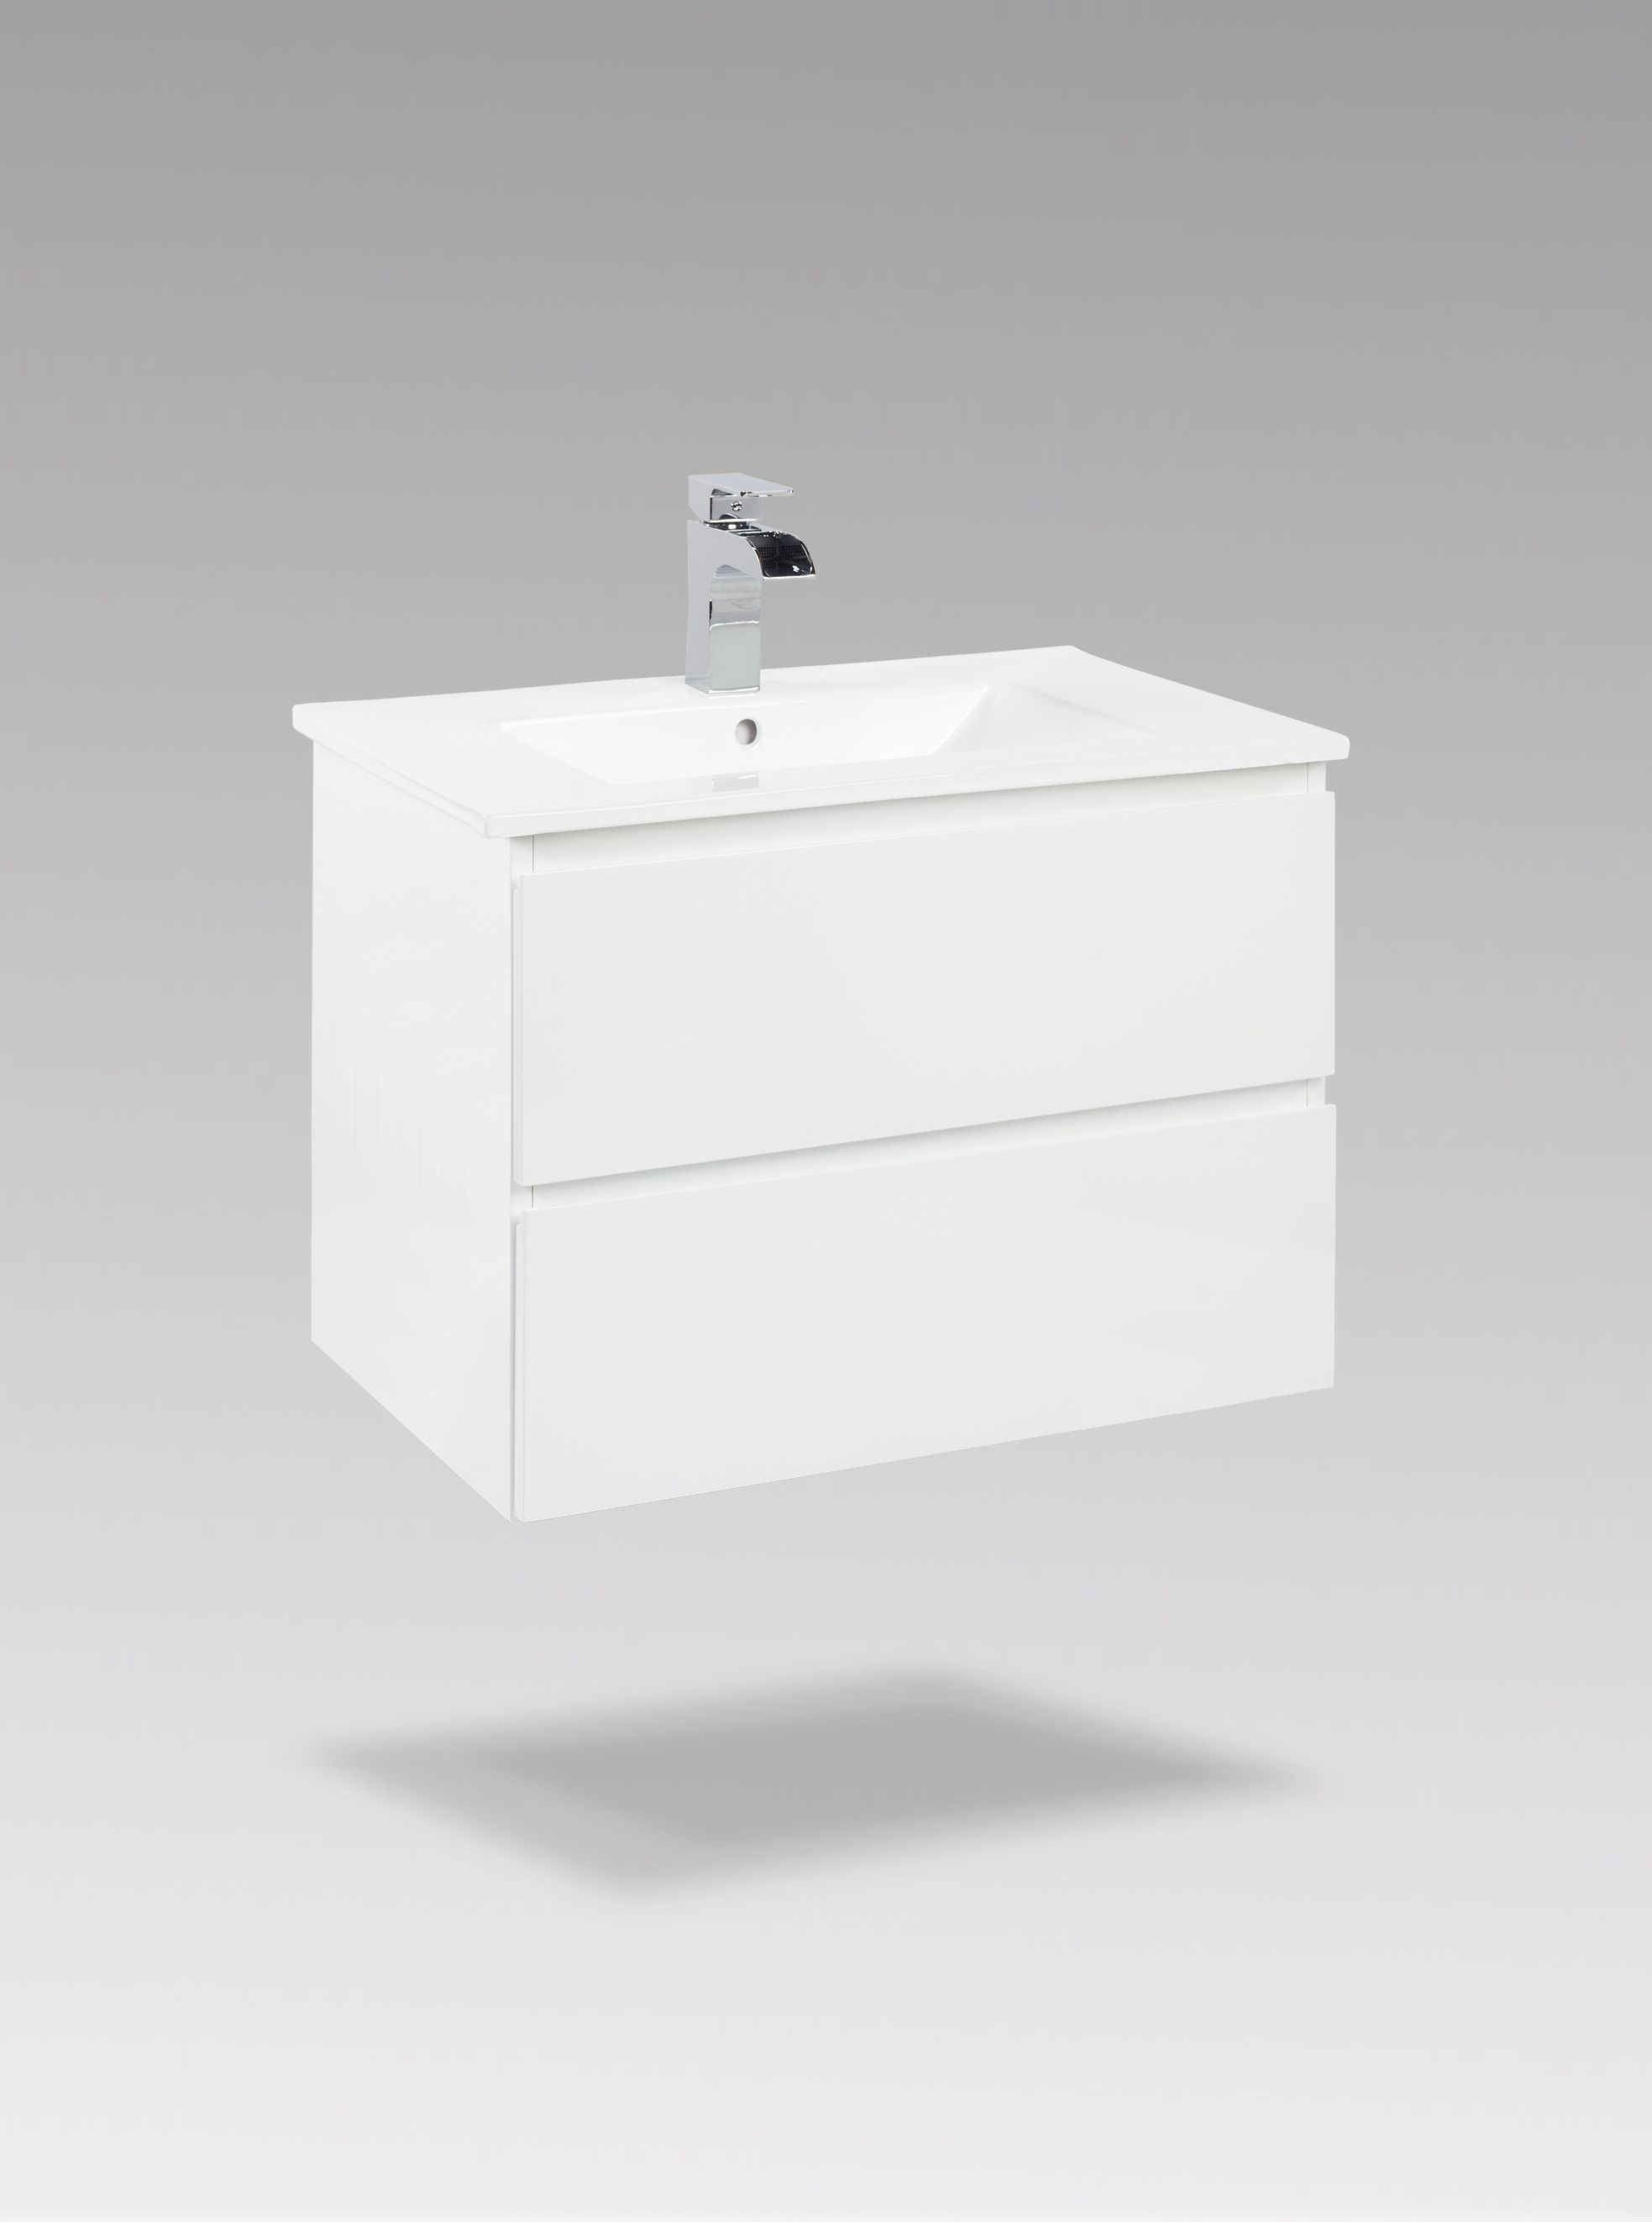 MAHG2318 Painted white finish 2 Slow close drawers Carved drawer ...